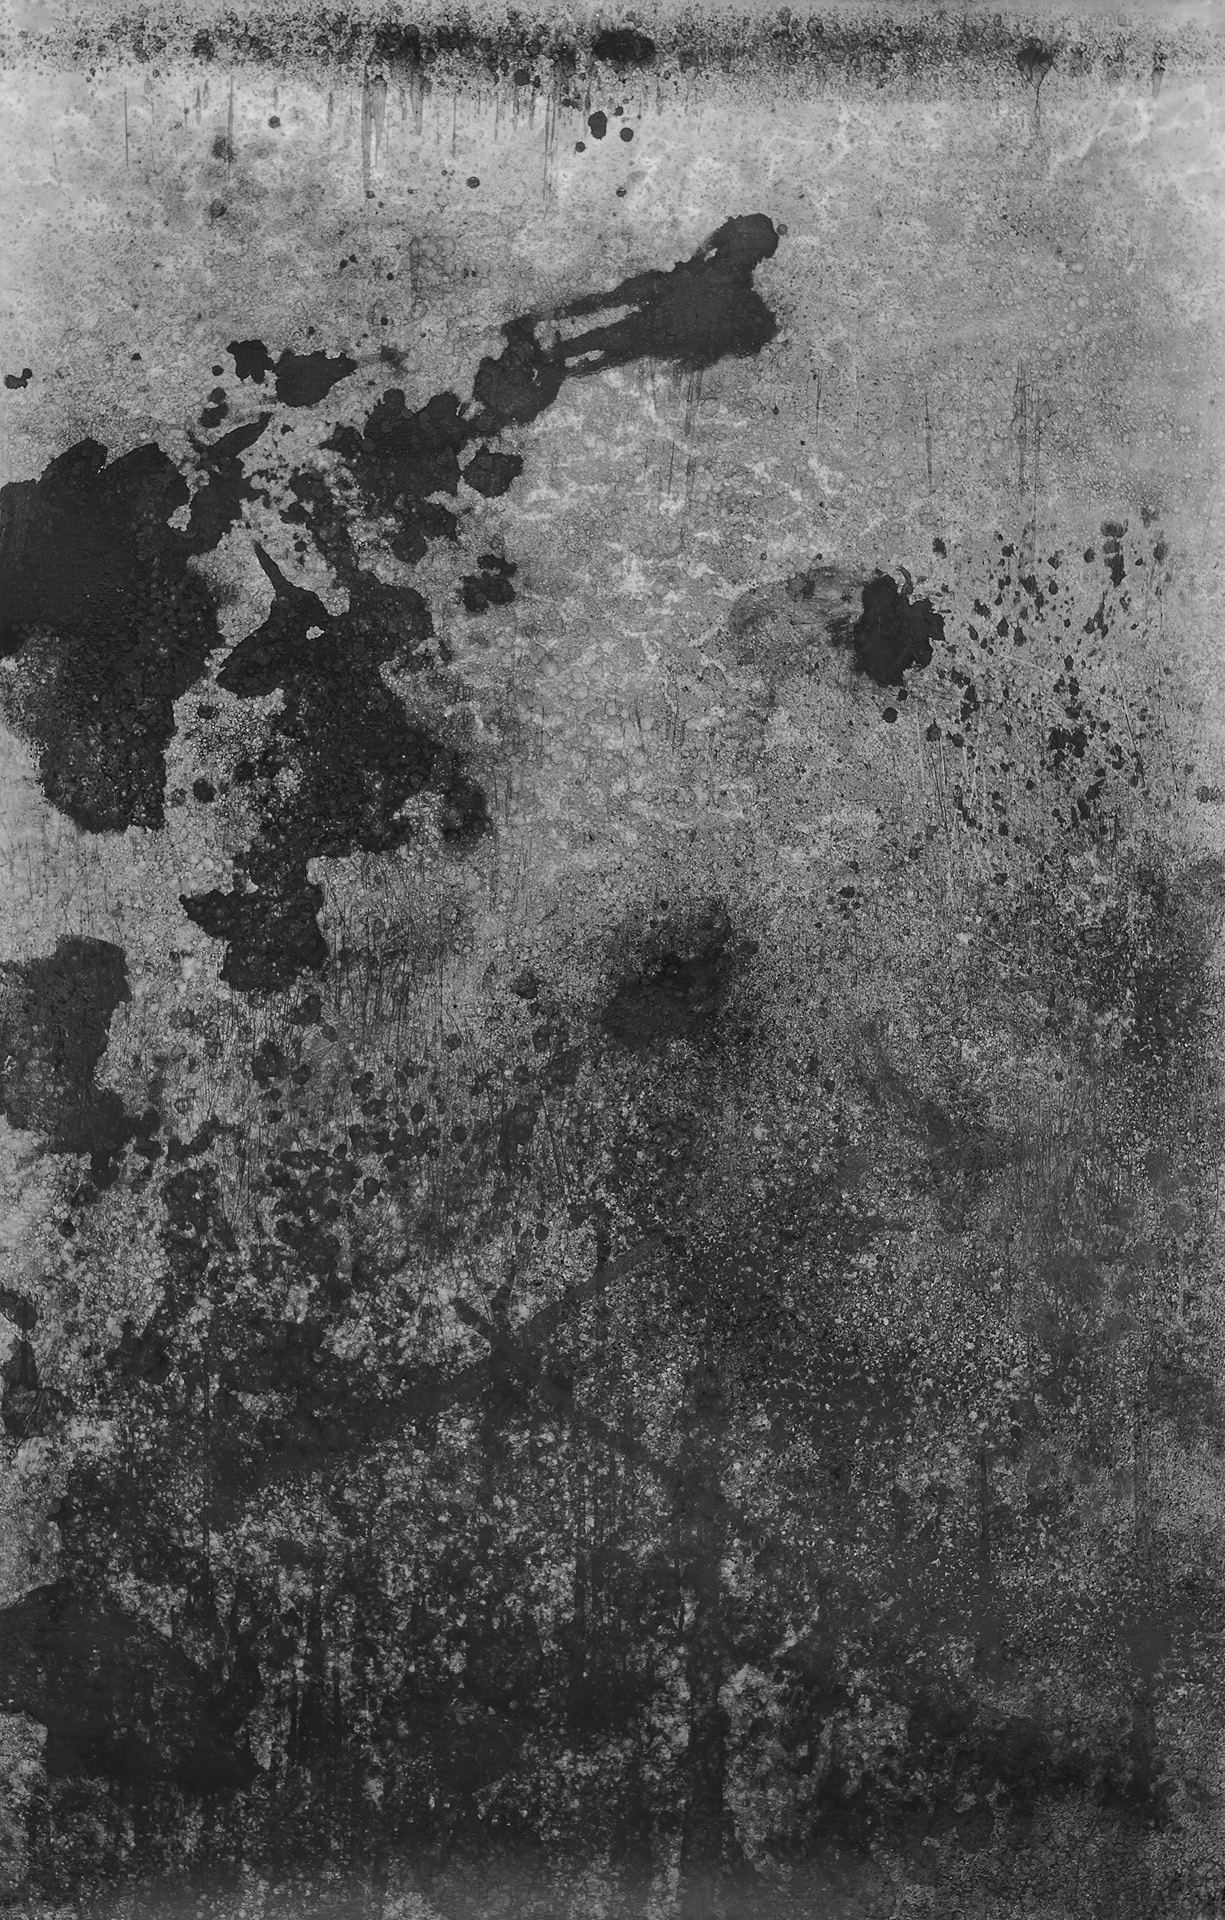 Nora Mona Bach – o. T. (V), 2016, charcoal on paper, 245 x 155 cm